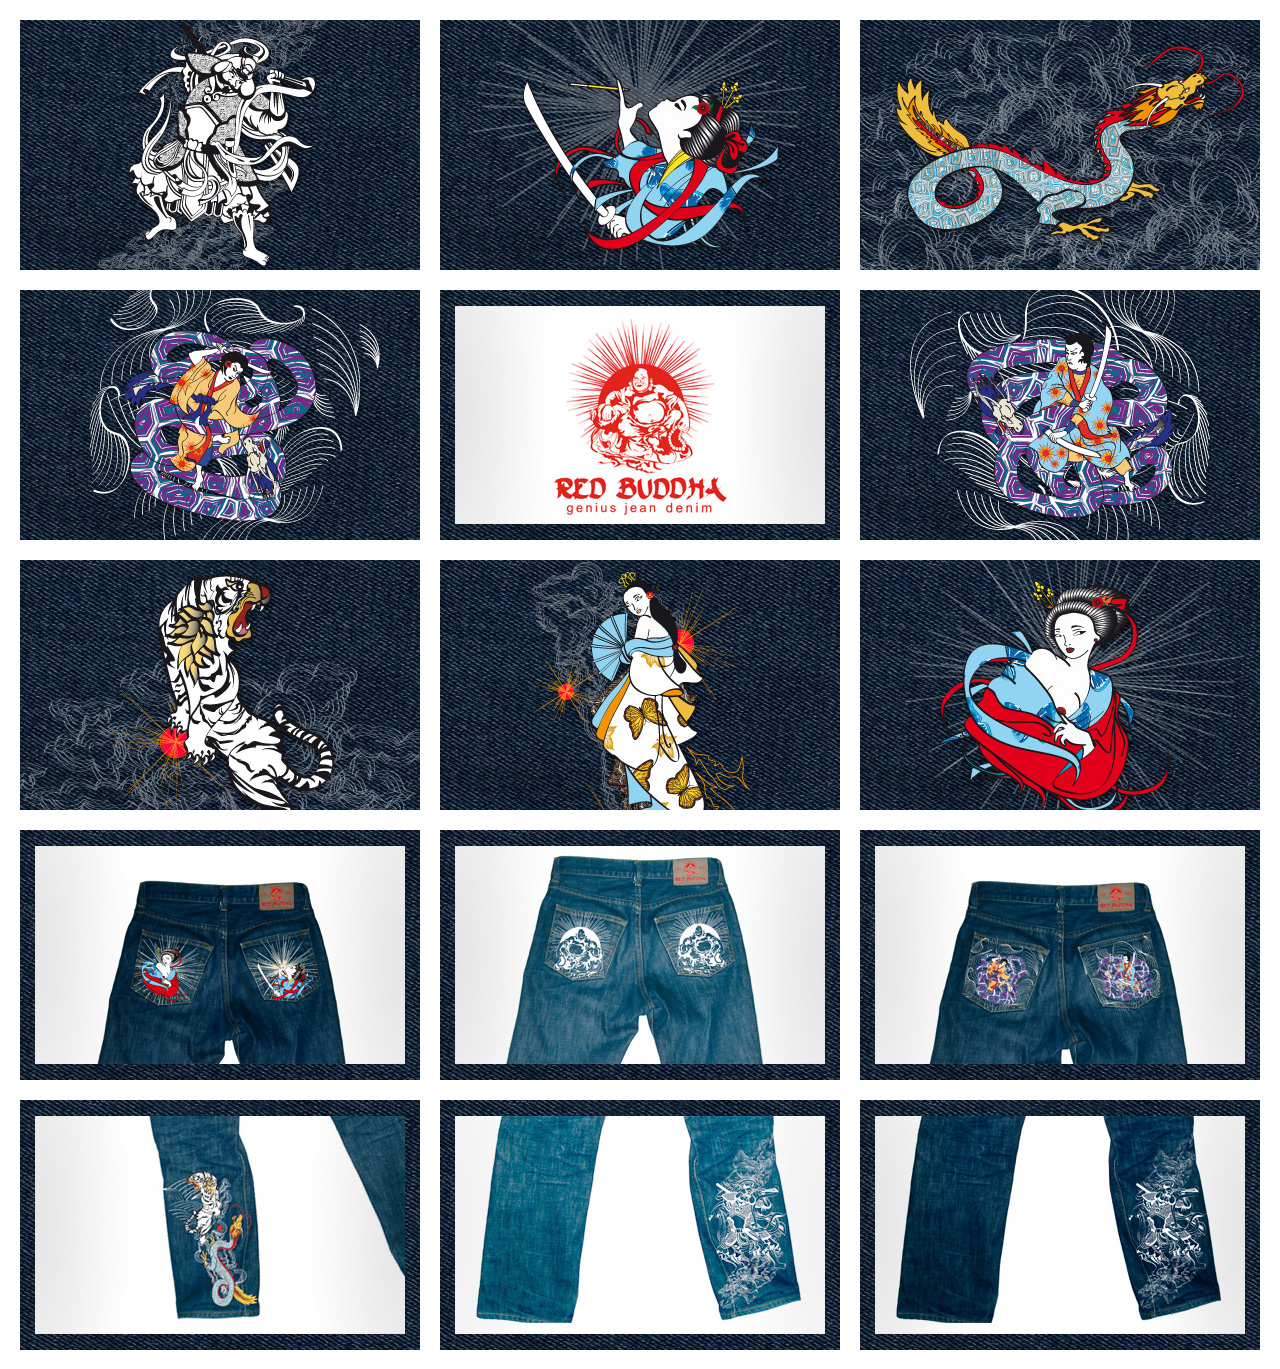 red-buddha-creation-logo-illustrations-brodees-jeans-caconcept-alexis-cretin-graphiste-montpellier